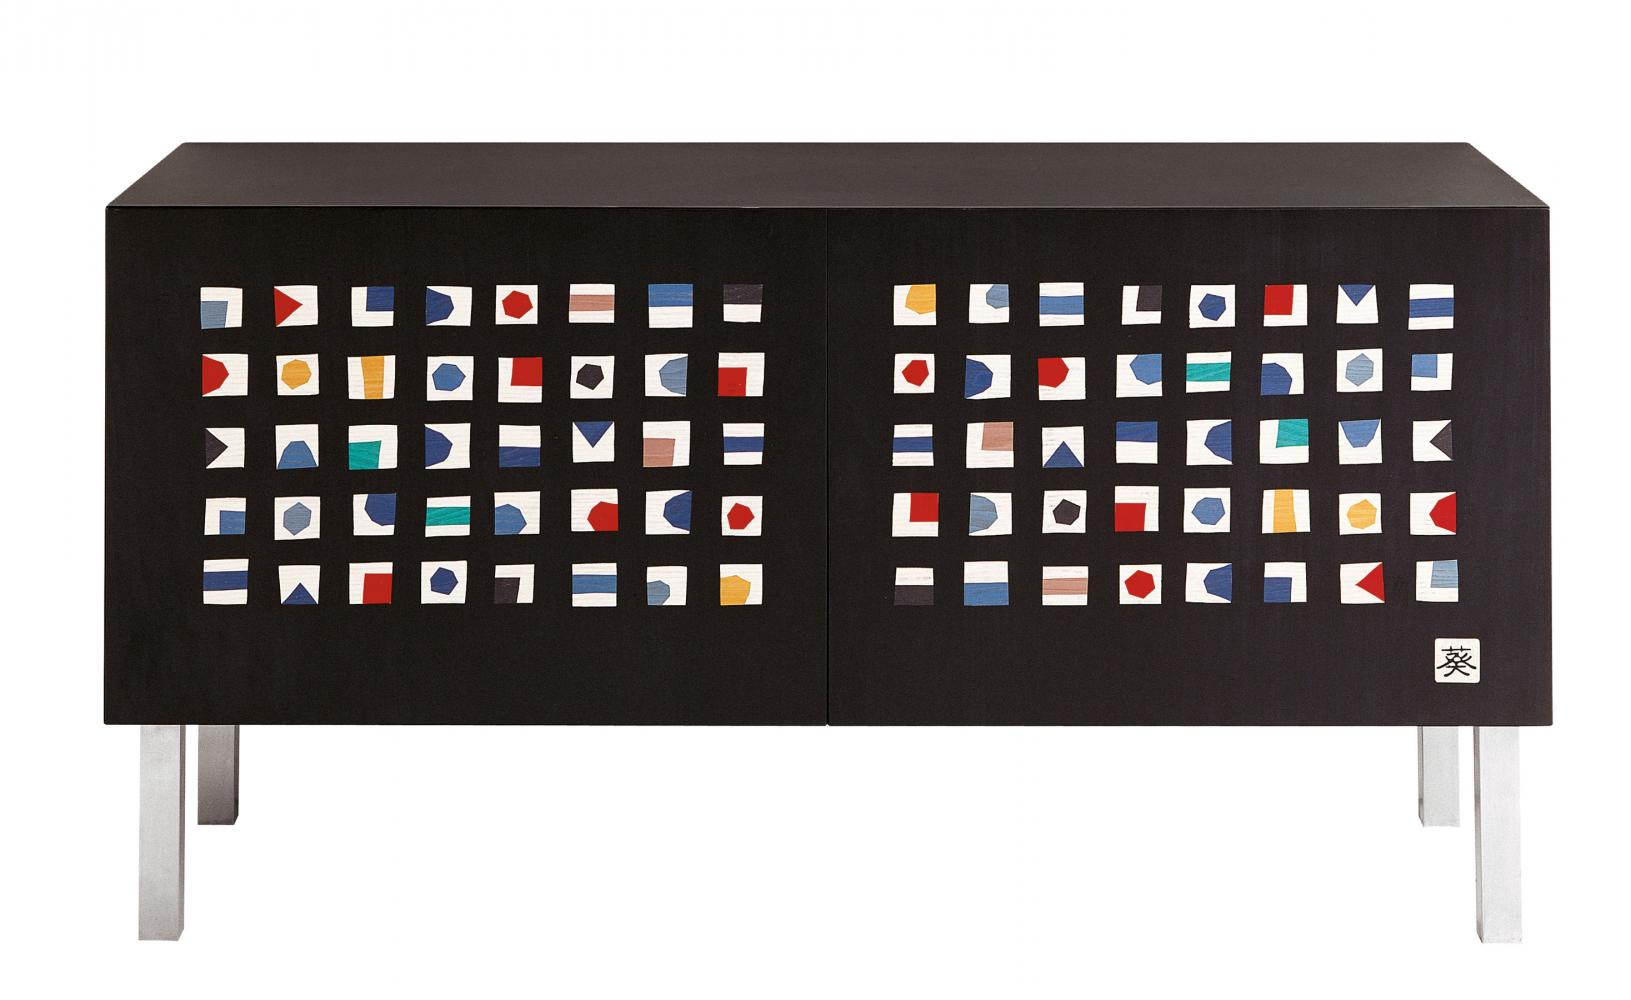 Quadratini Magici Intarsia limited edition sideboard with inlays by Aoi Huber Kono